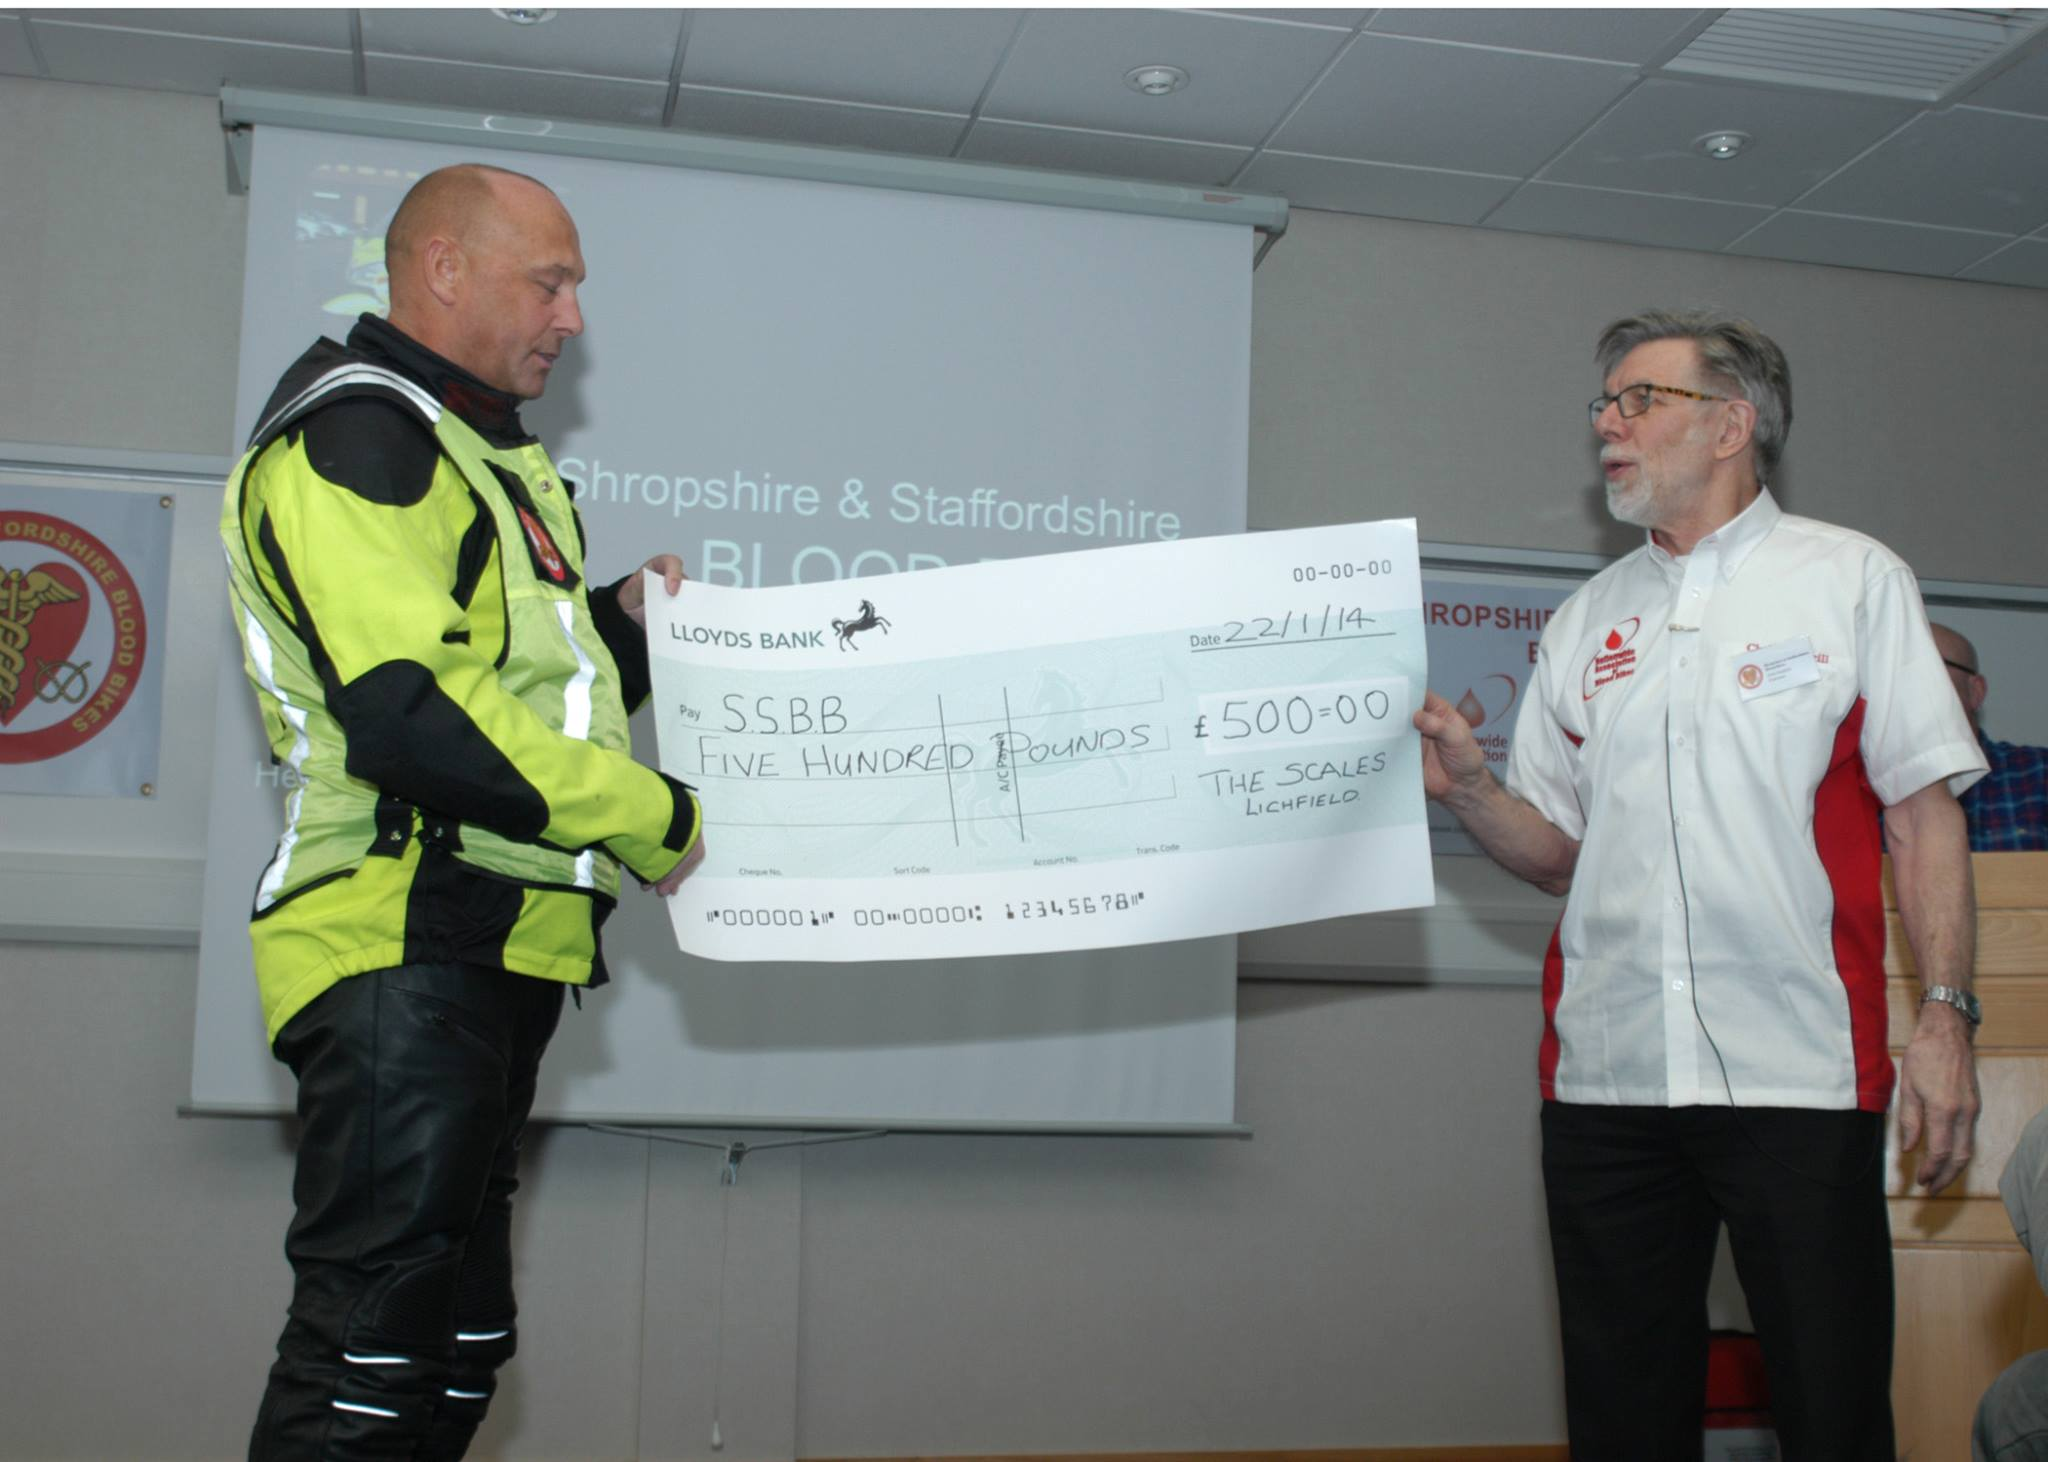 Blood bike service to launch at RAF Cosford (2048 × 1462)